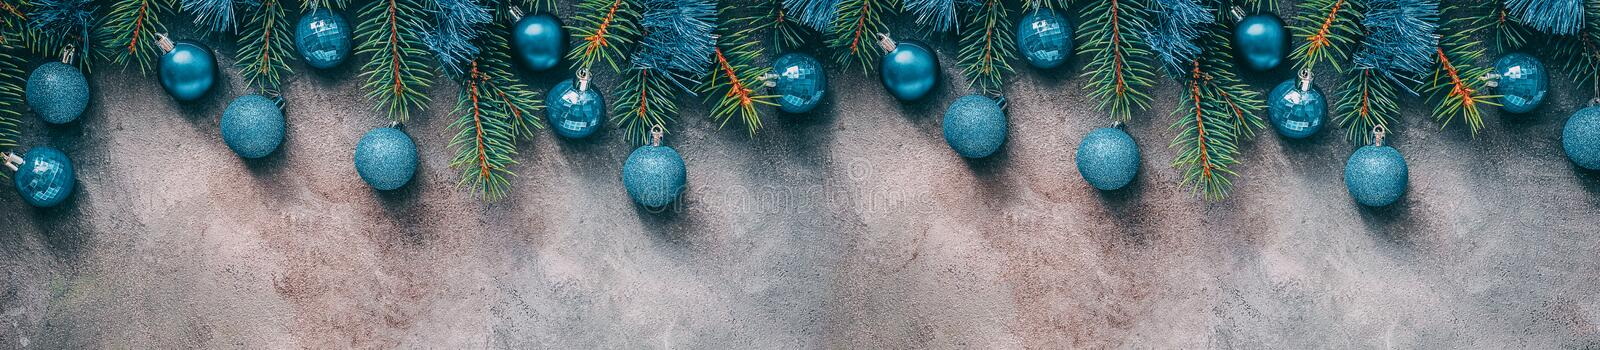 Beautiful Christmas border, fir branches decorated blue balls and tinsel on a dark textured rustic background. Top view, flat lay royalty free stock images